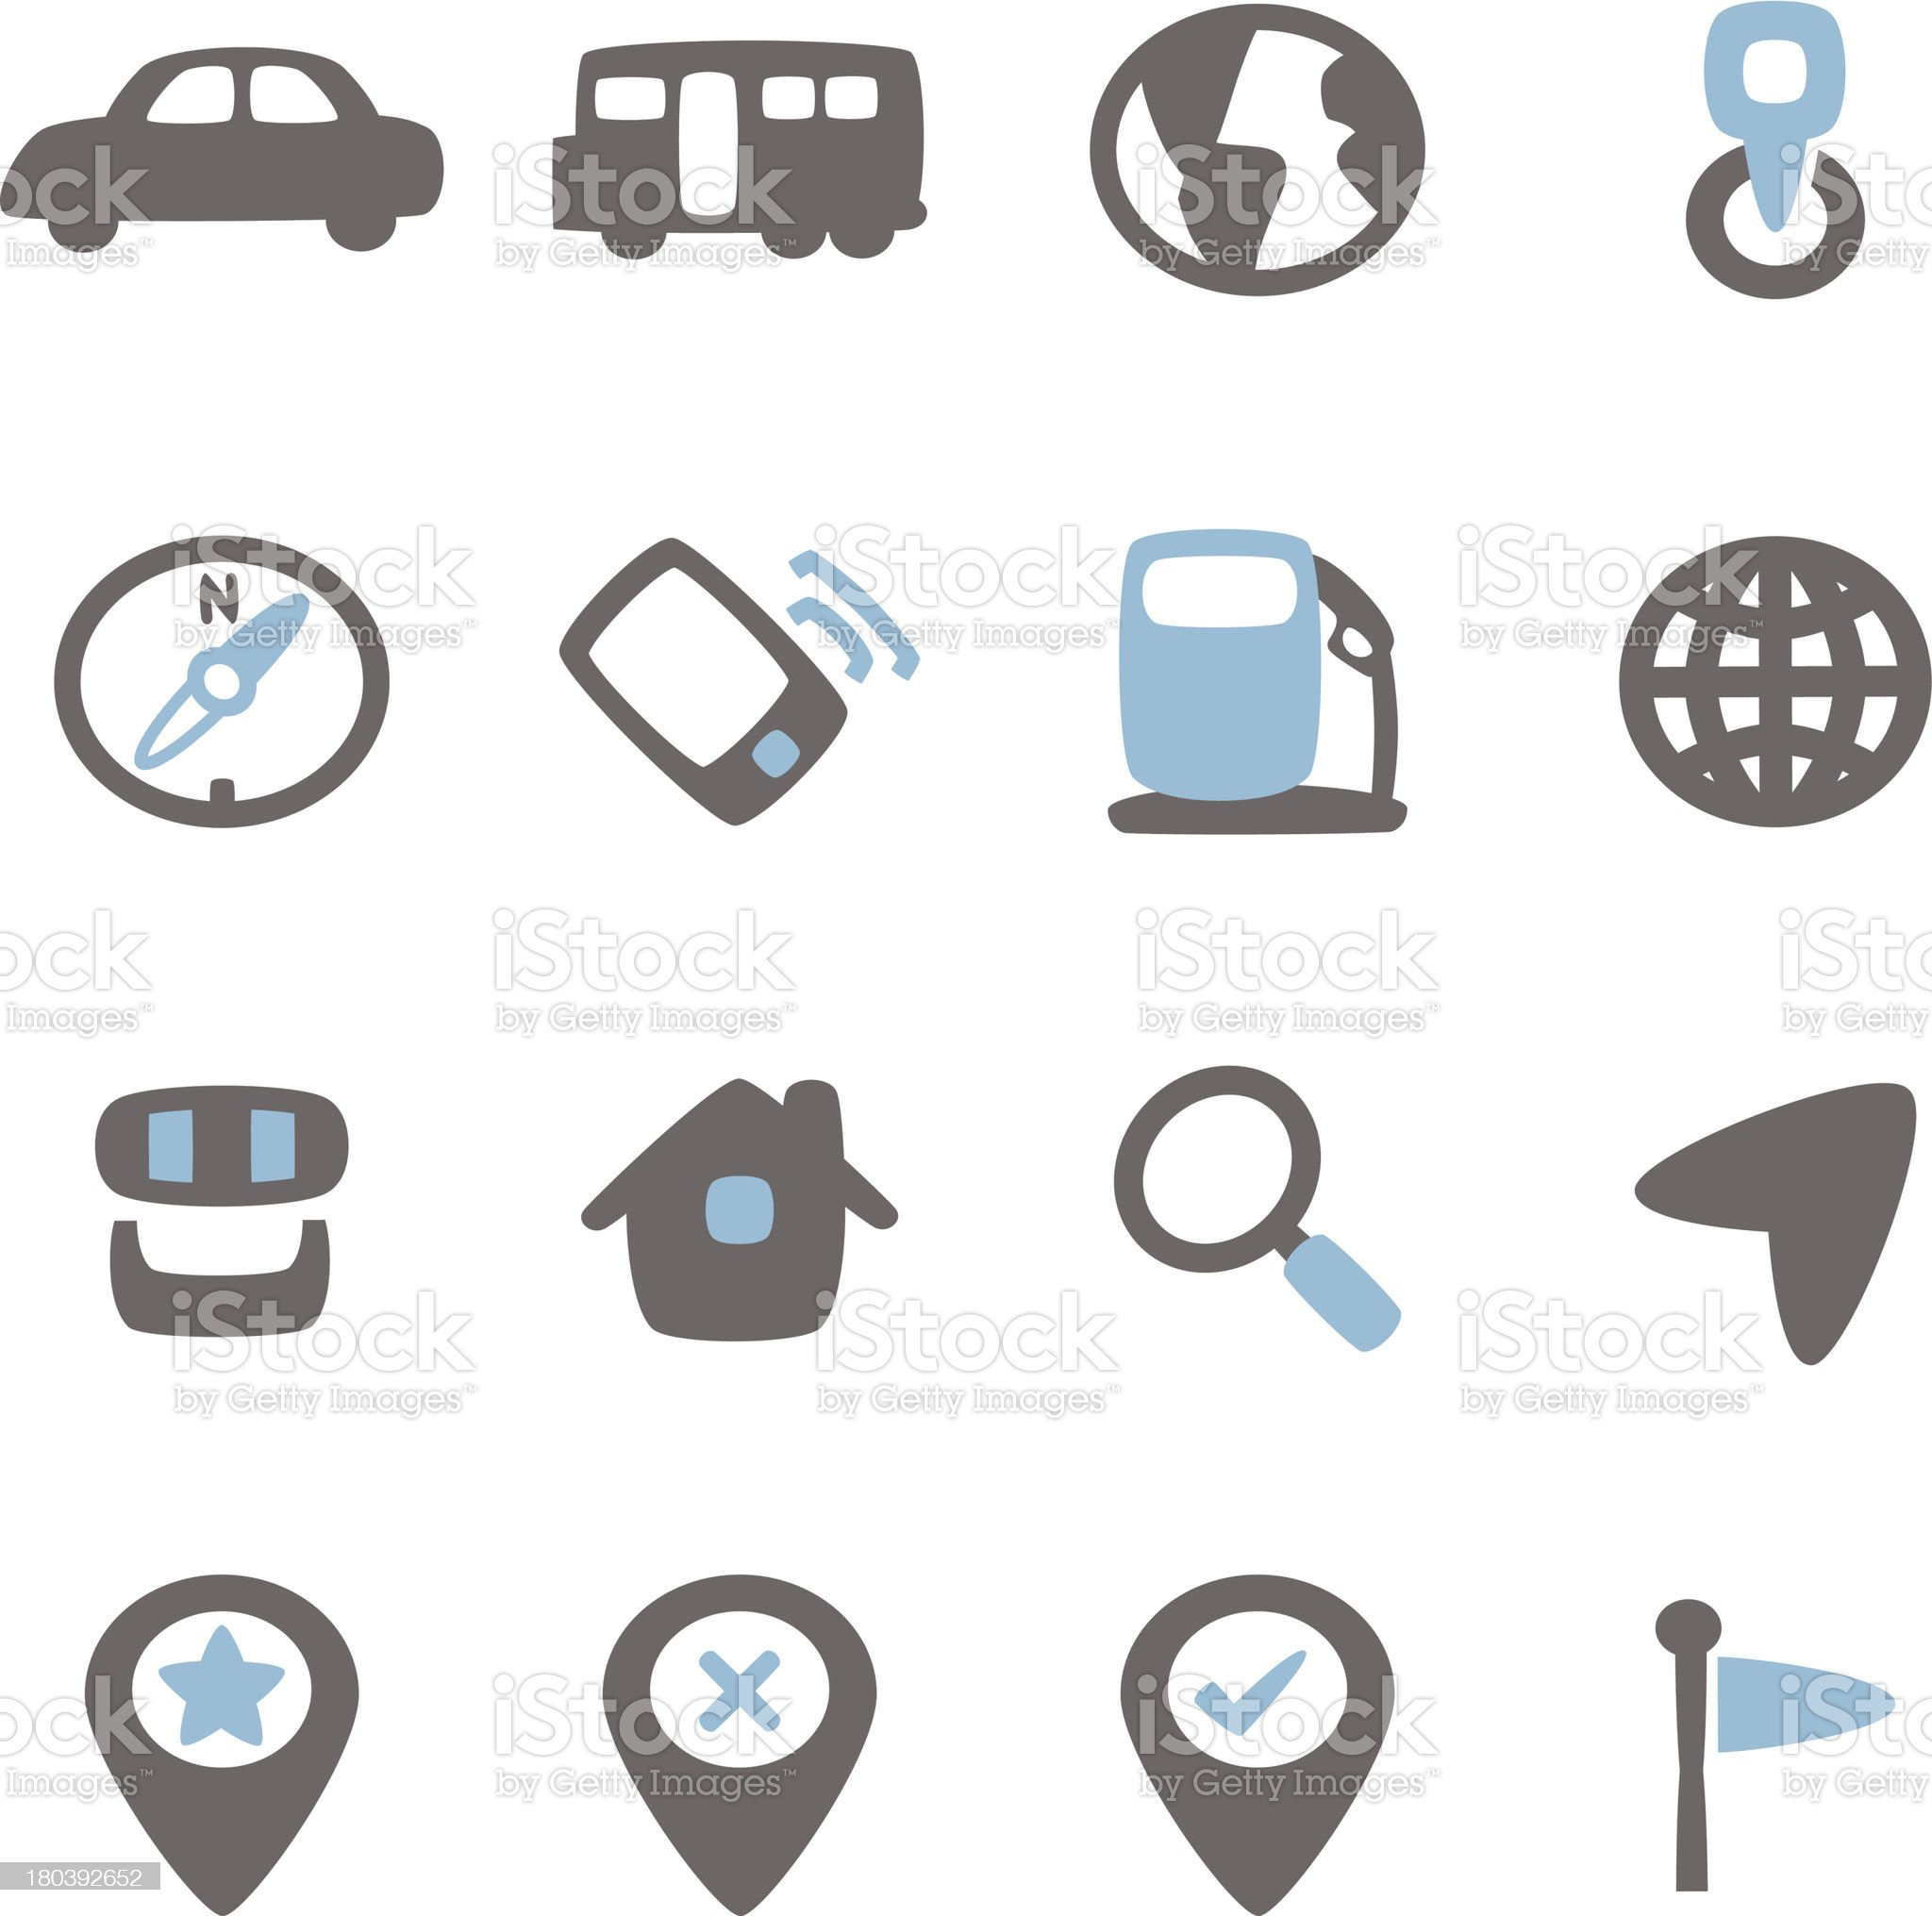 Navigate Icon royalty-free stock vector art